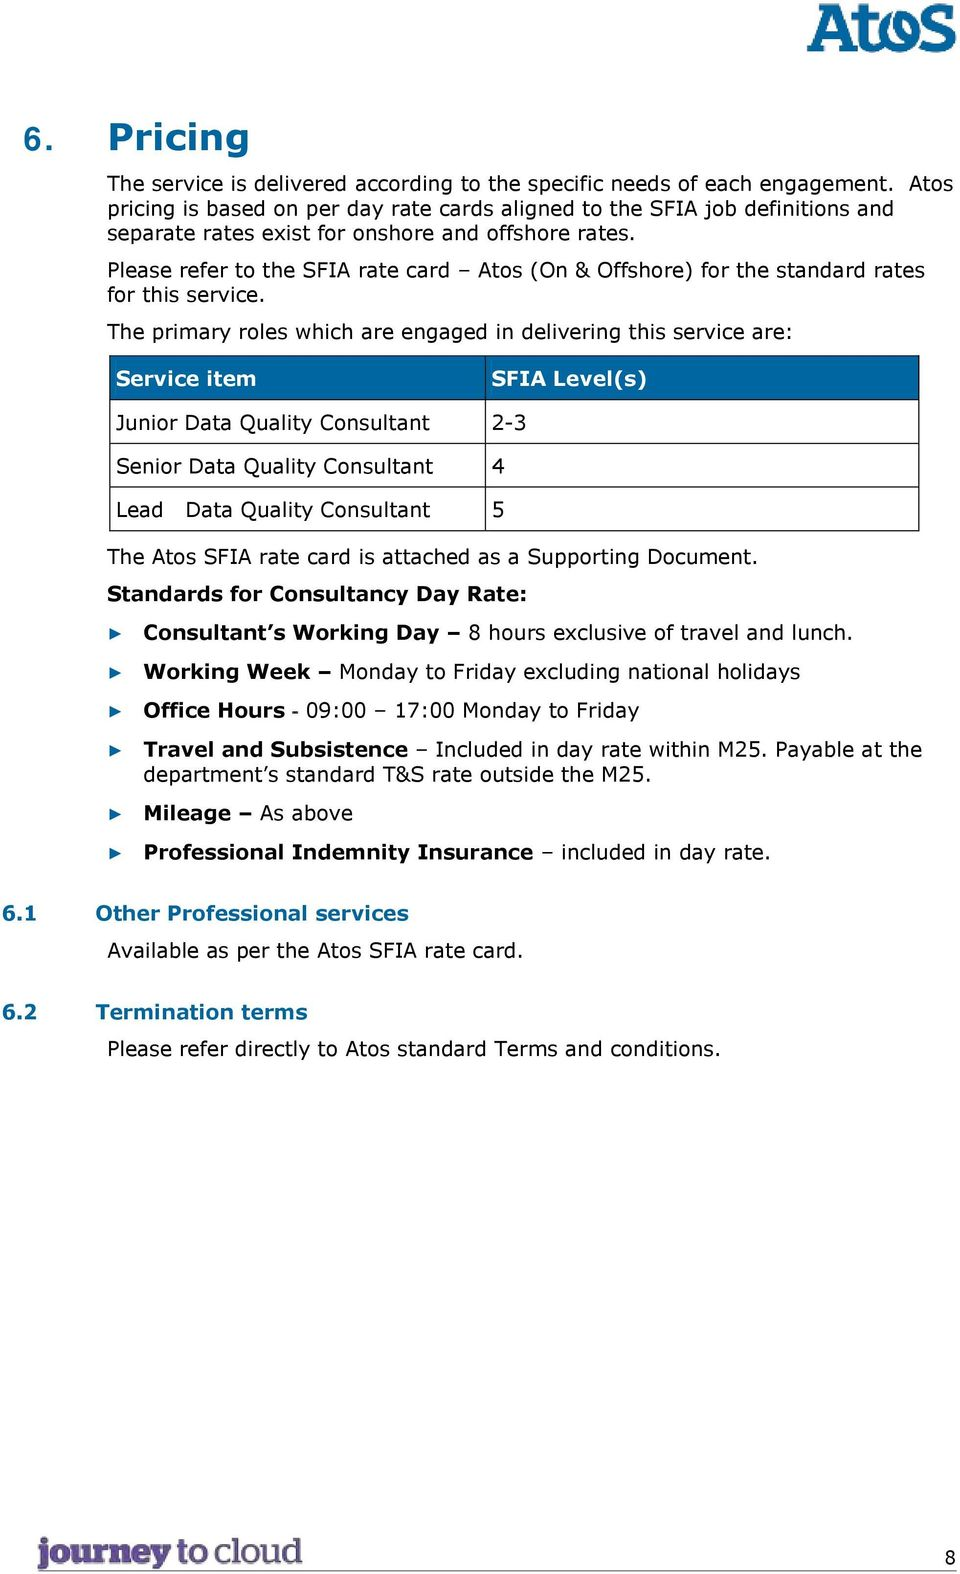 Please refer to the SFIA rate card Atos (On & Offshore) for the standard rates for this service.